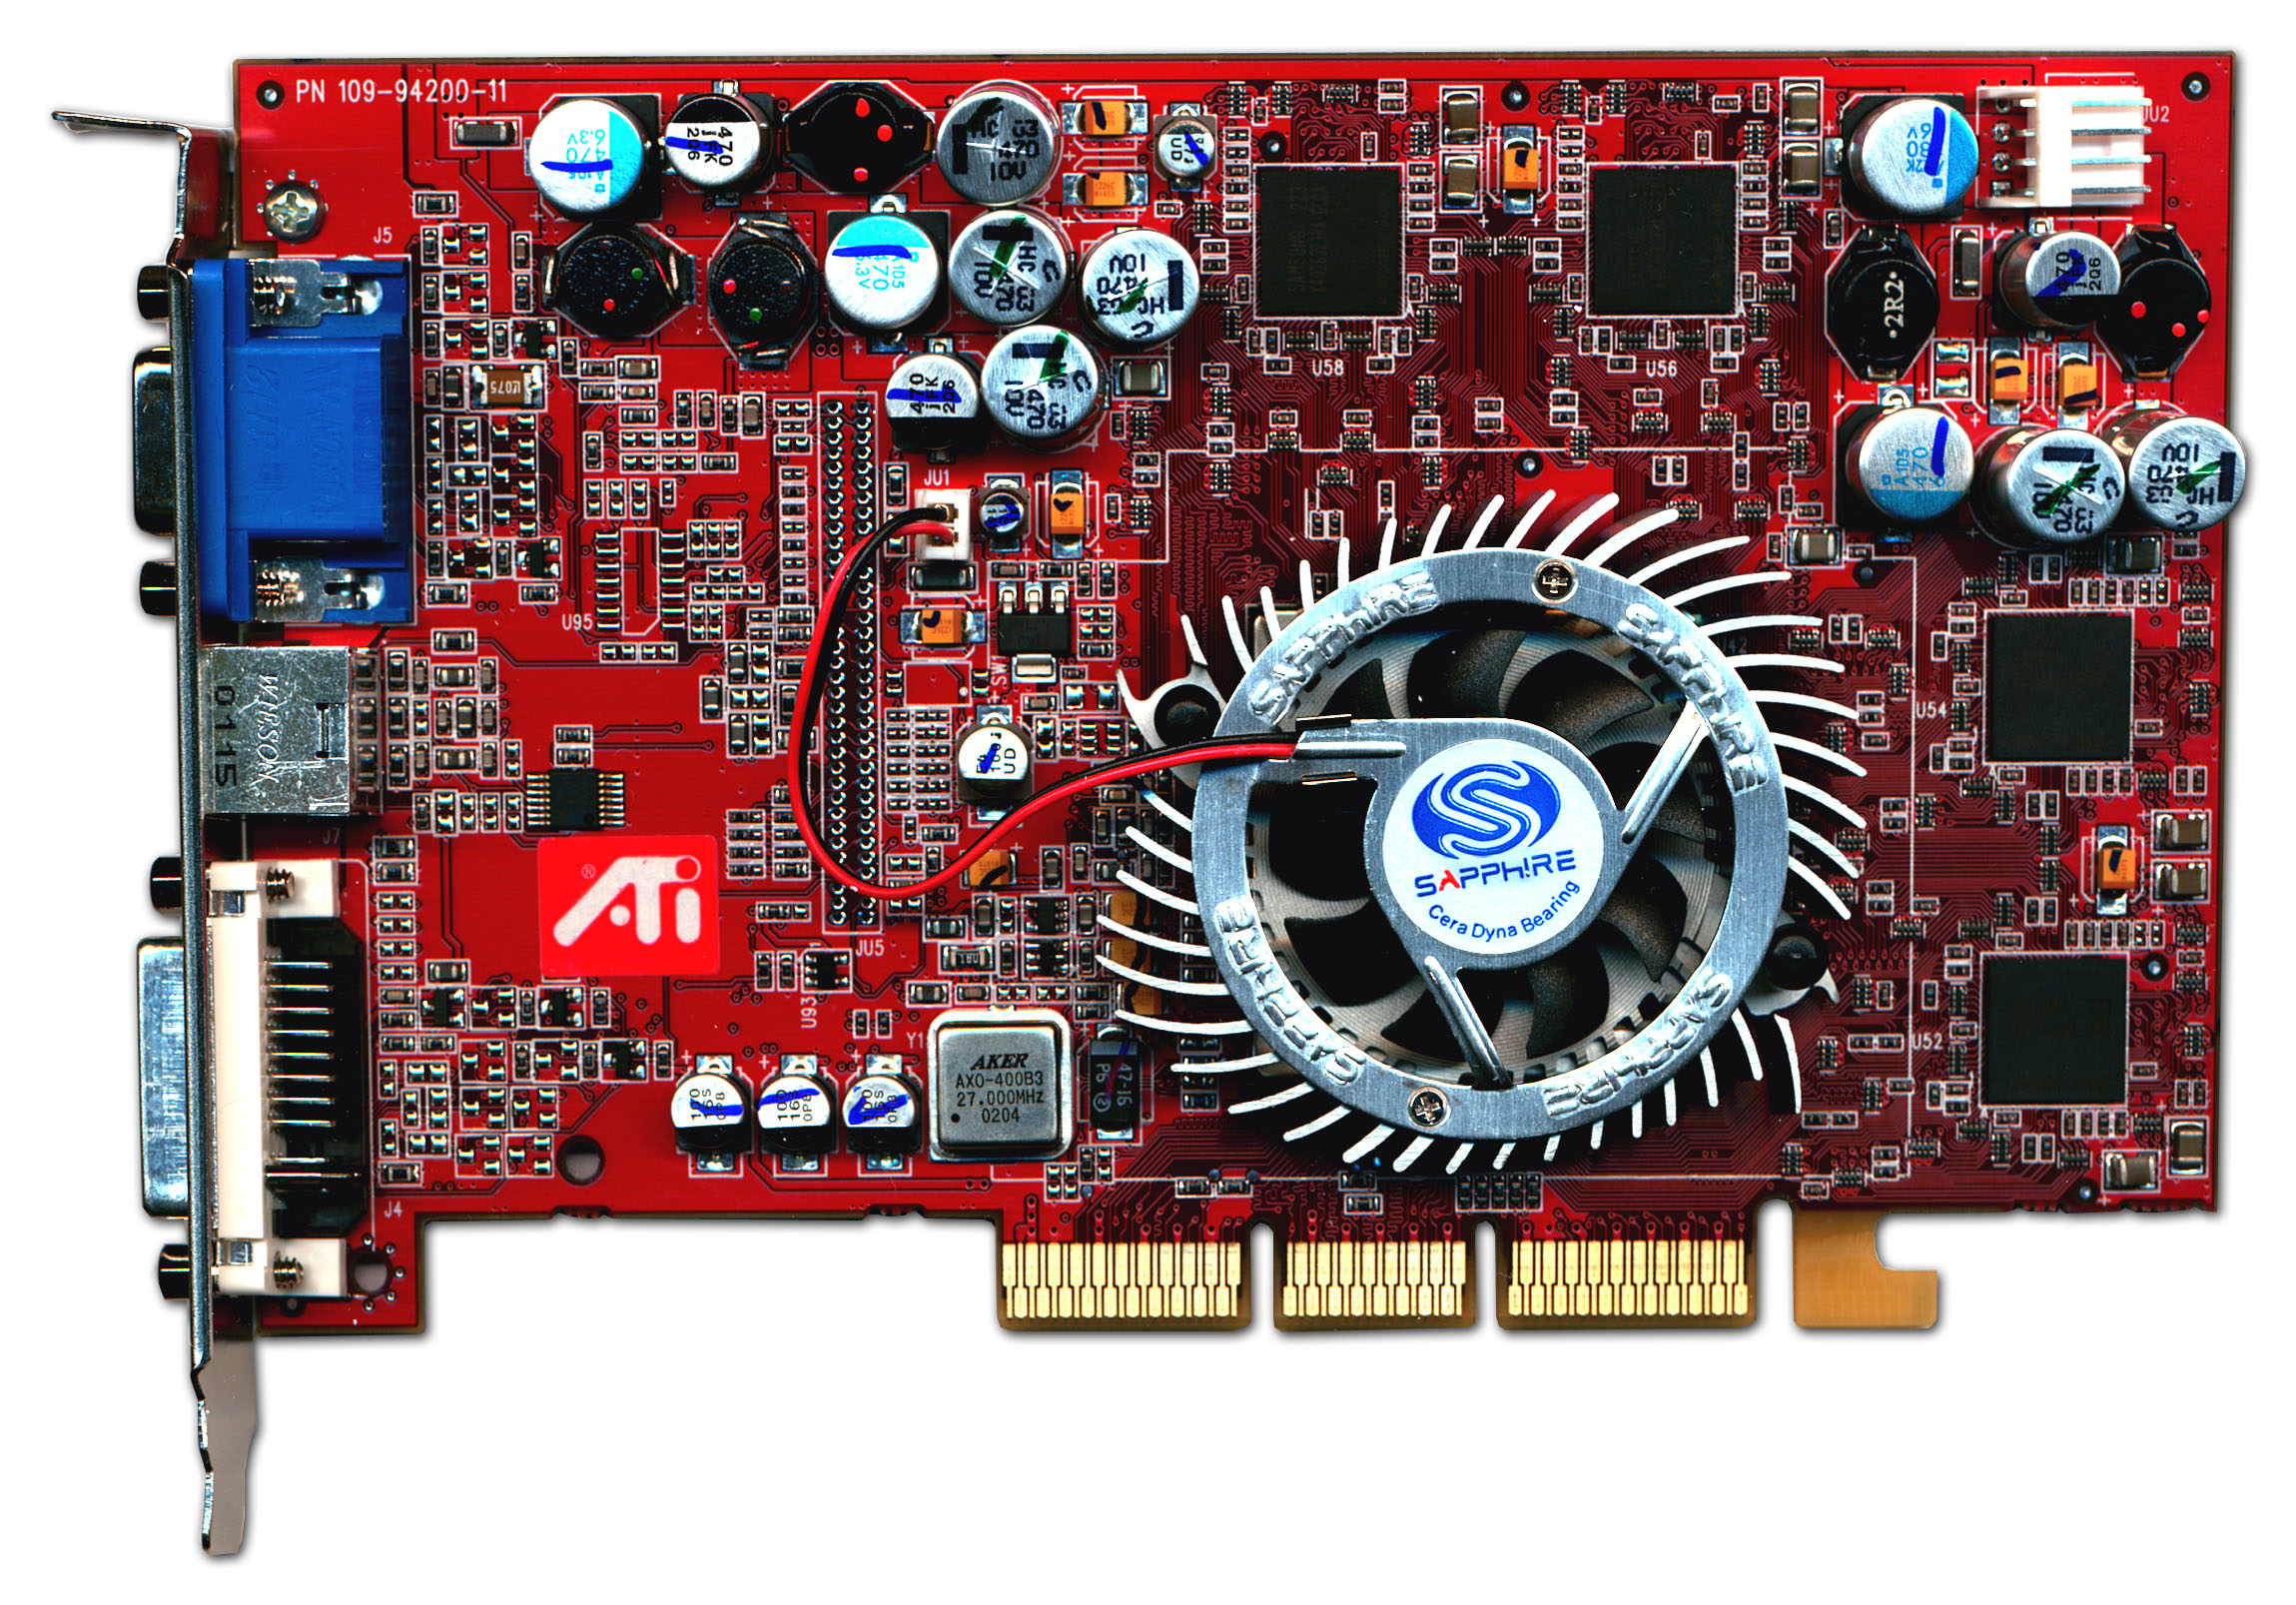 http://www.ixbt.com/video2/images/r9700-5/r9700pro-scan-front.jpg